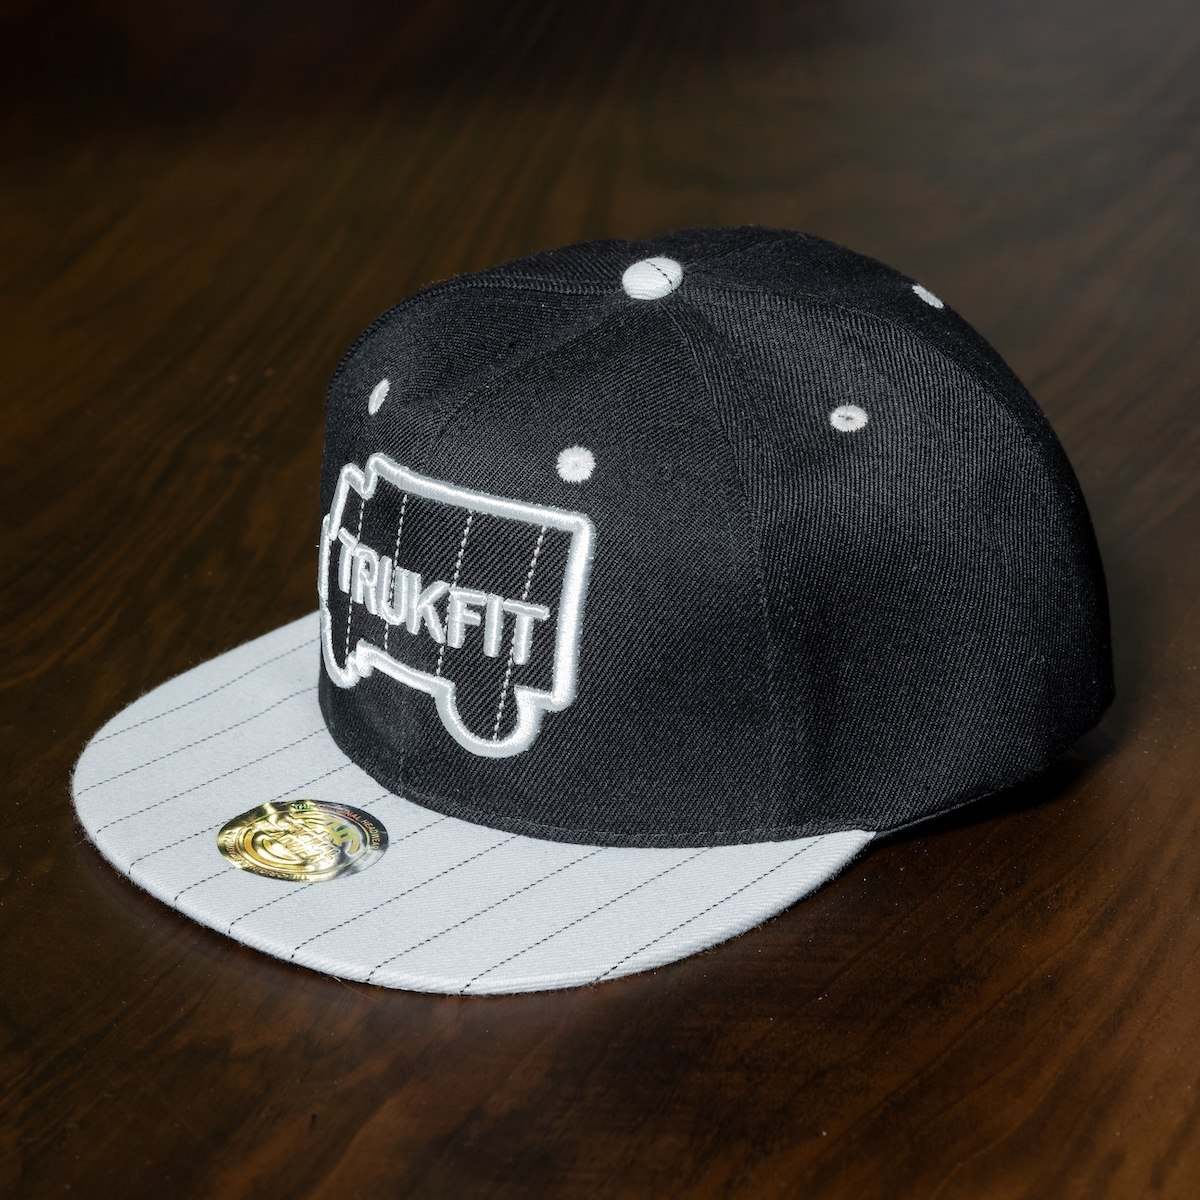 """Trukfit"" Cap In Black"